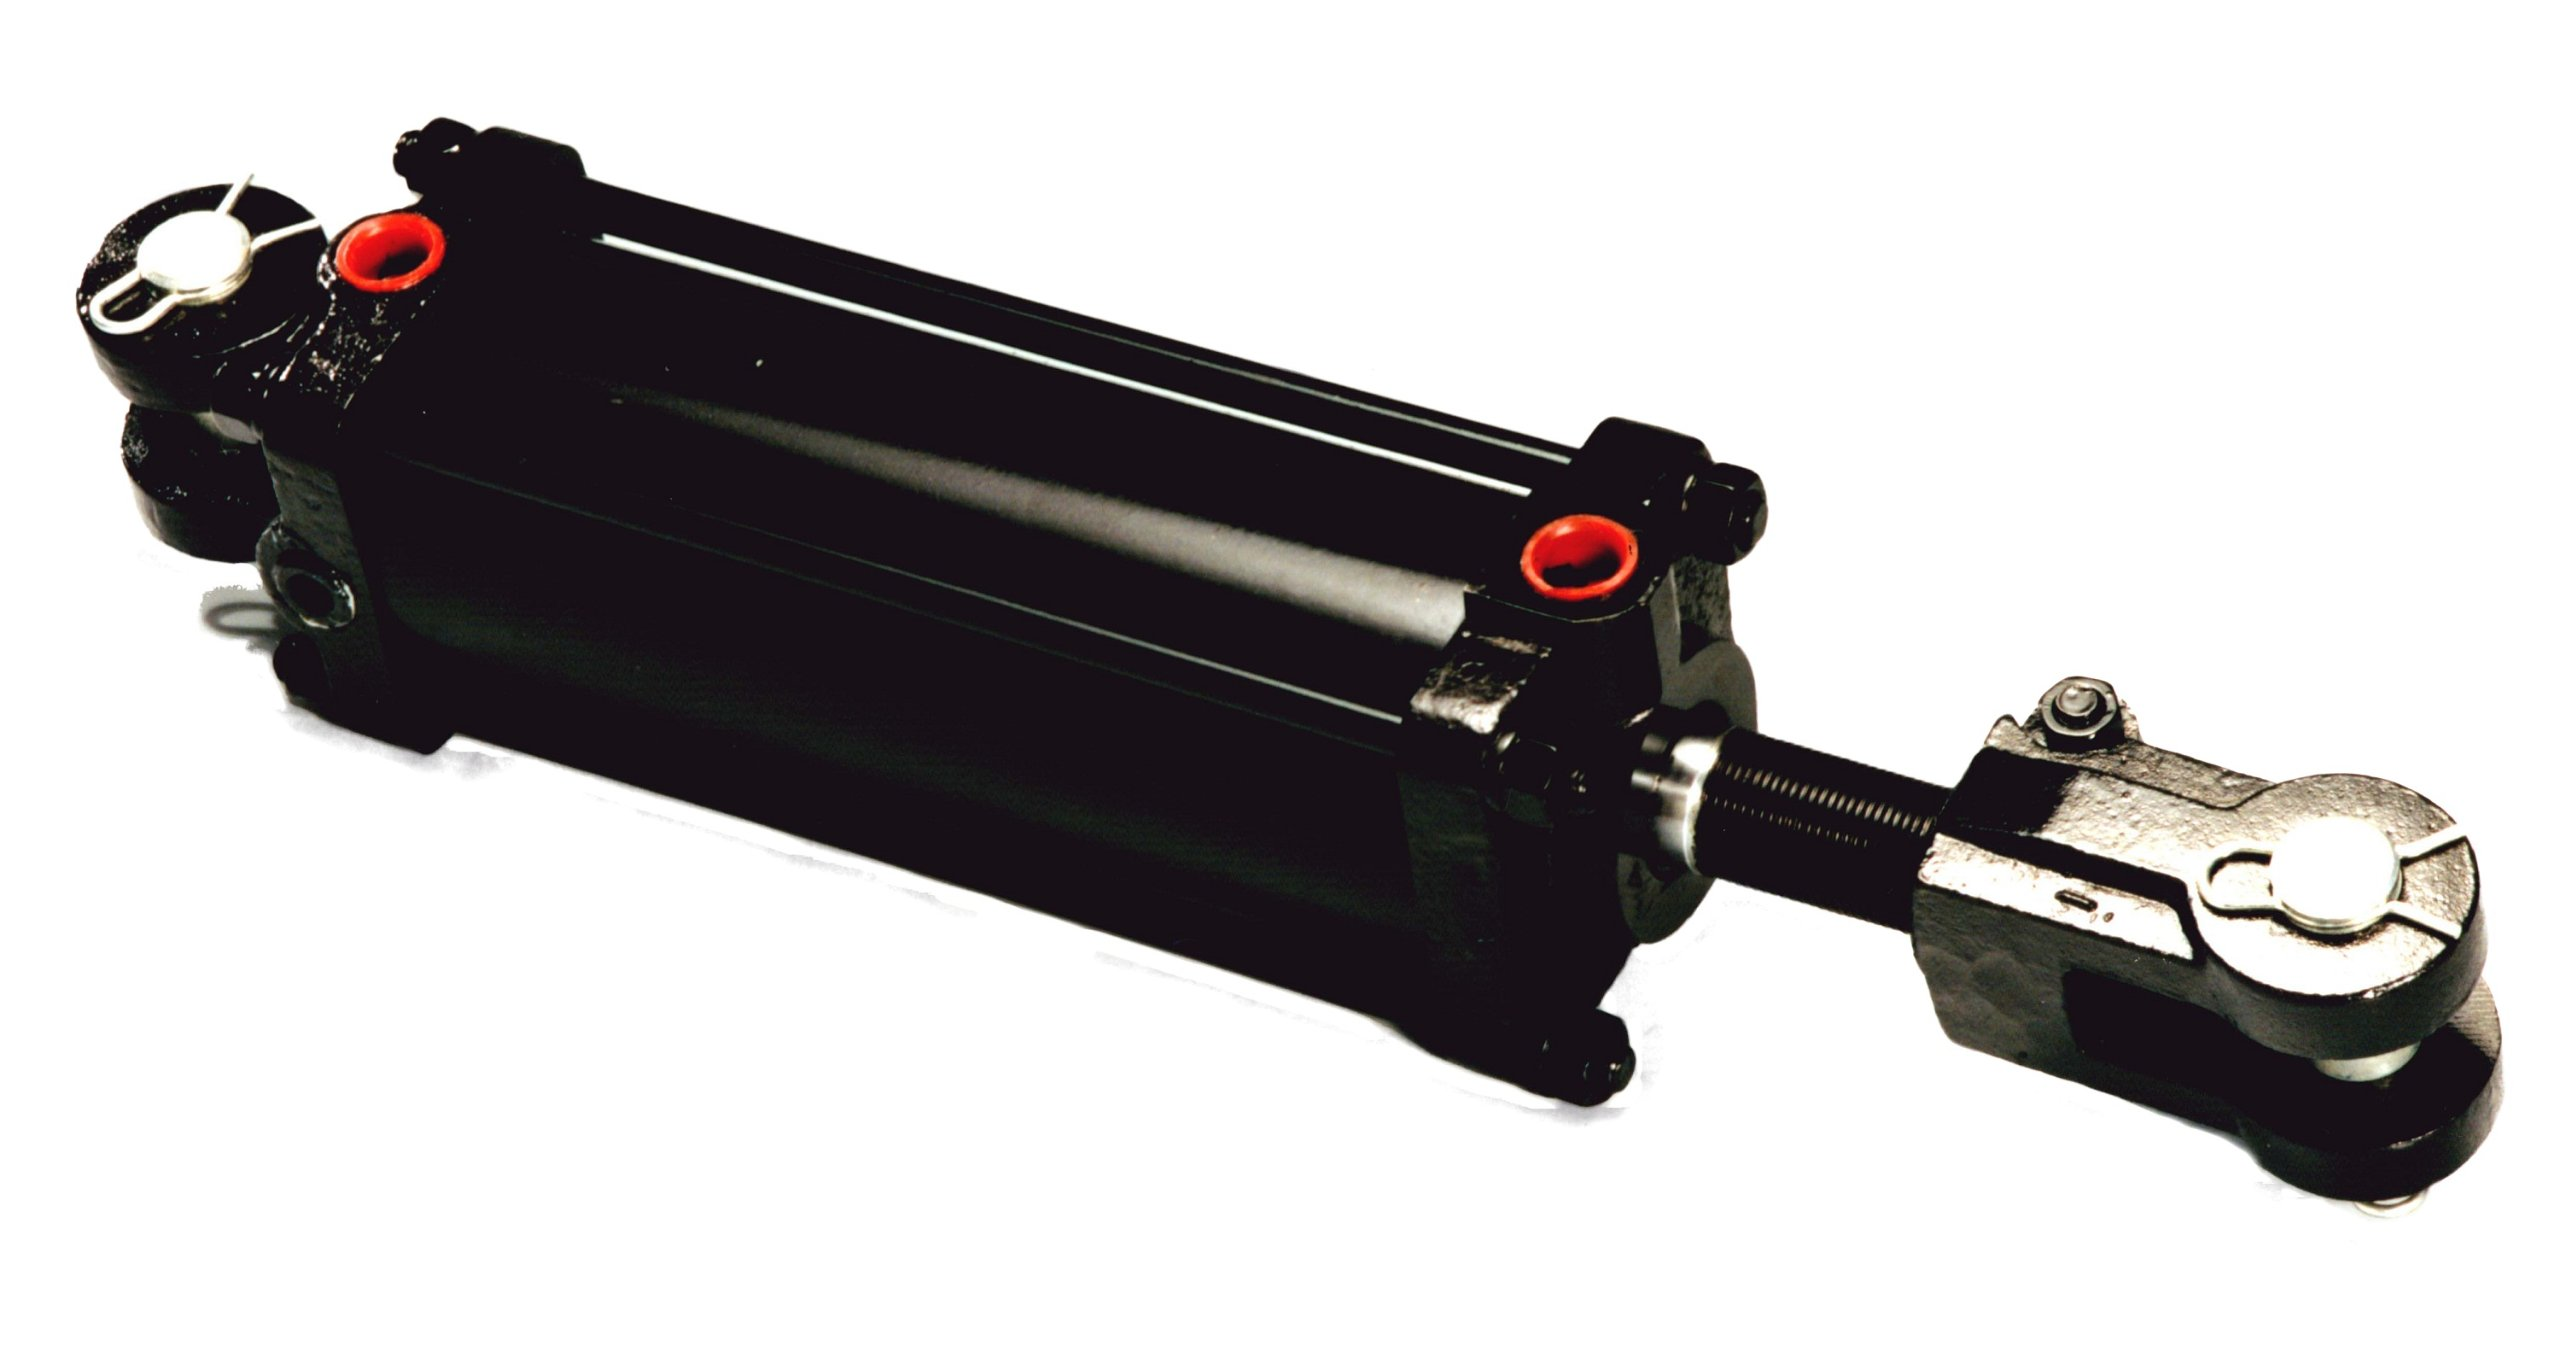 G-FORCE 11460 4-Inch Bore 24-Inch Stroke Tie Rod Hydraulic Cylinder by GForce (Image #1)